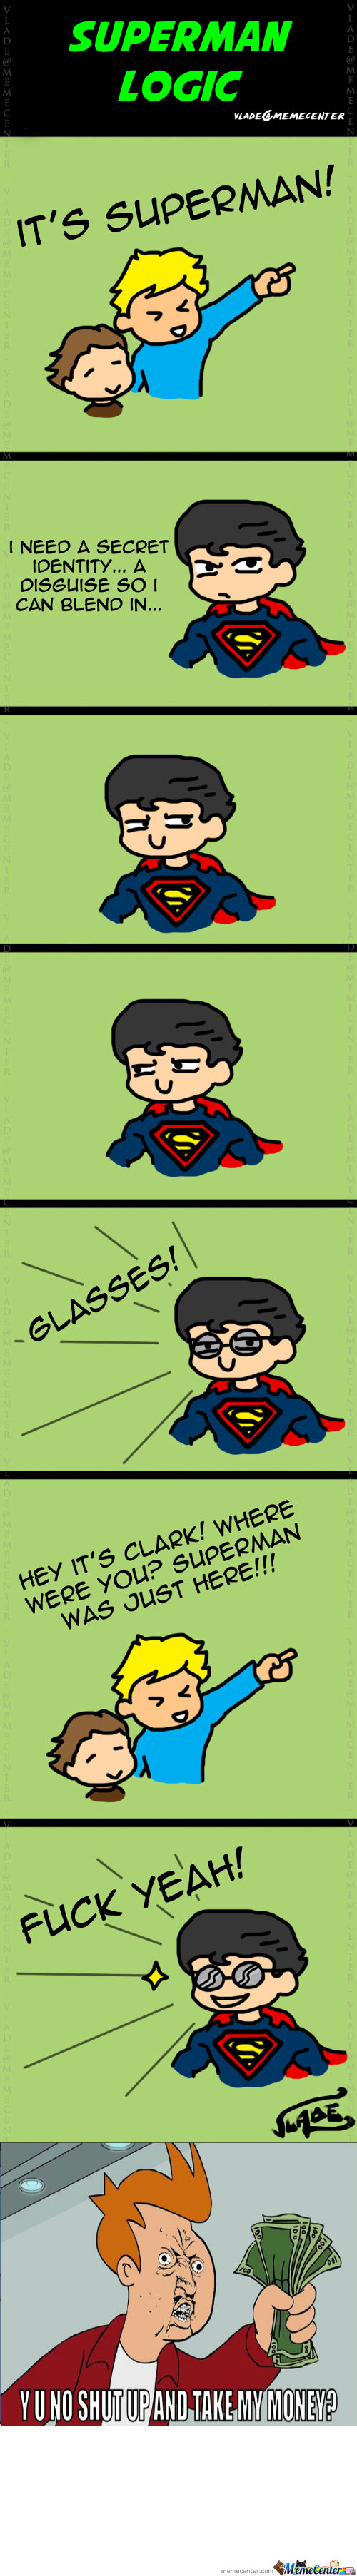 [RMX] Superman Logic